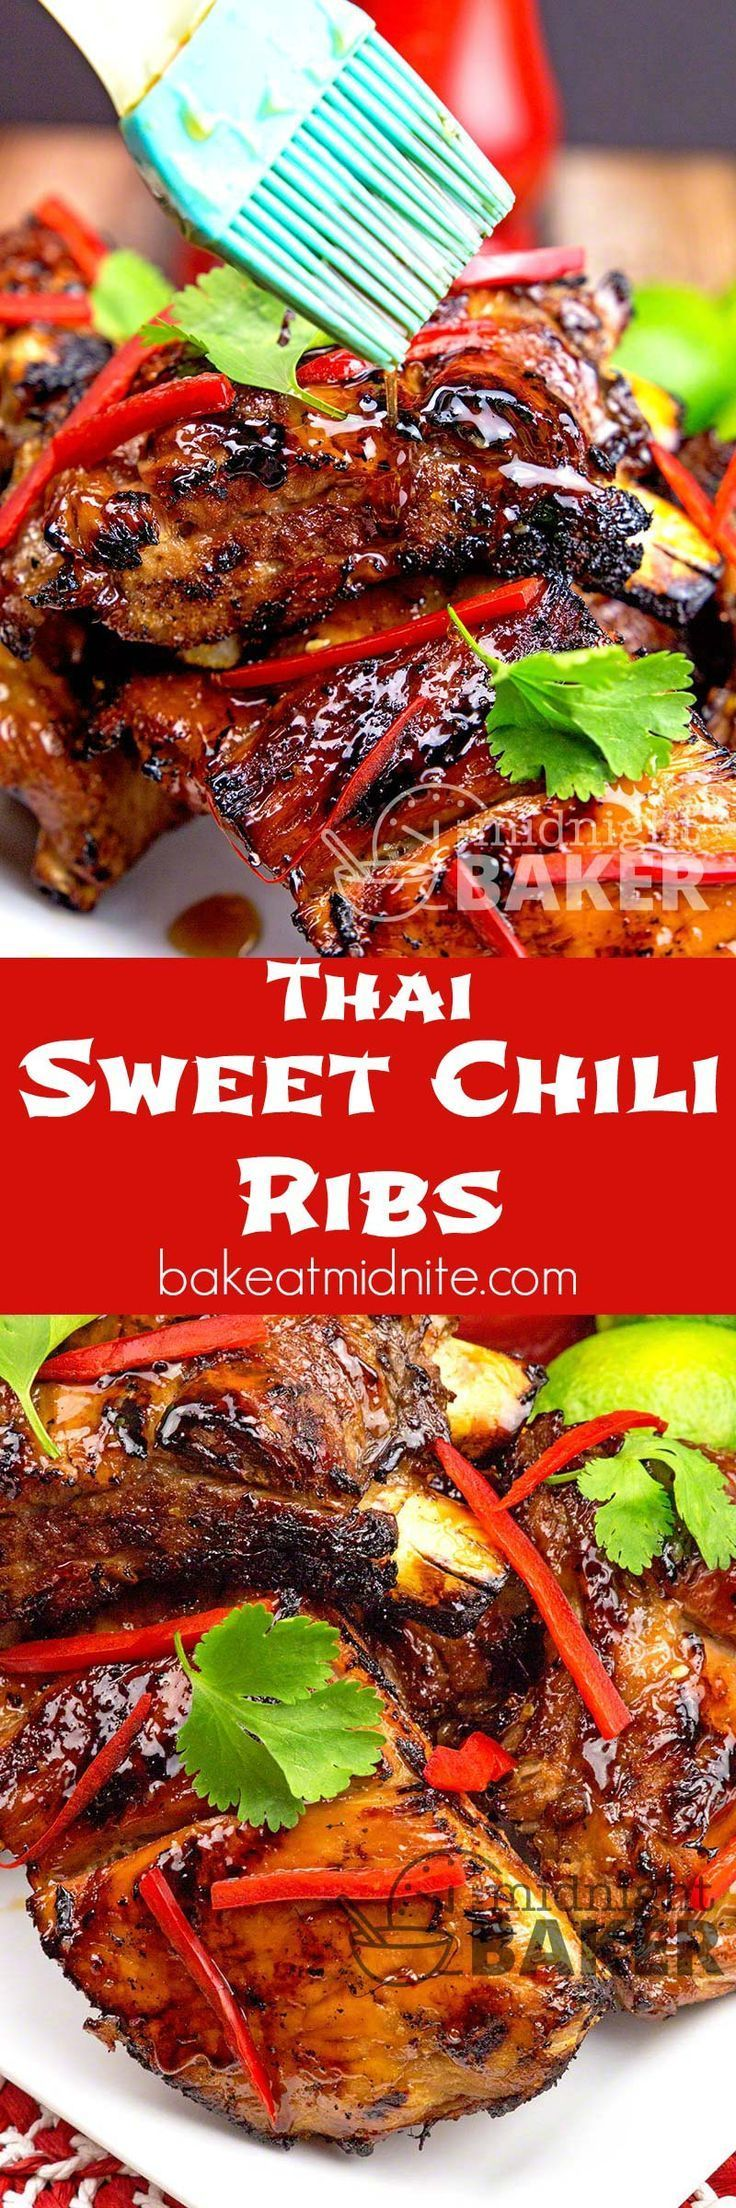 Yummy pork baby back ribs with a sweet and tangy thai chili sauce yummy pork baby back ribs with a sweet and tangy thai chili sauce glaze baby food recipesthai food recipeschinese forumfinder Choice Image